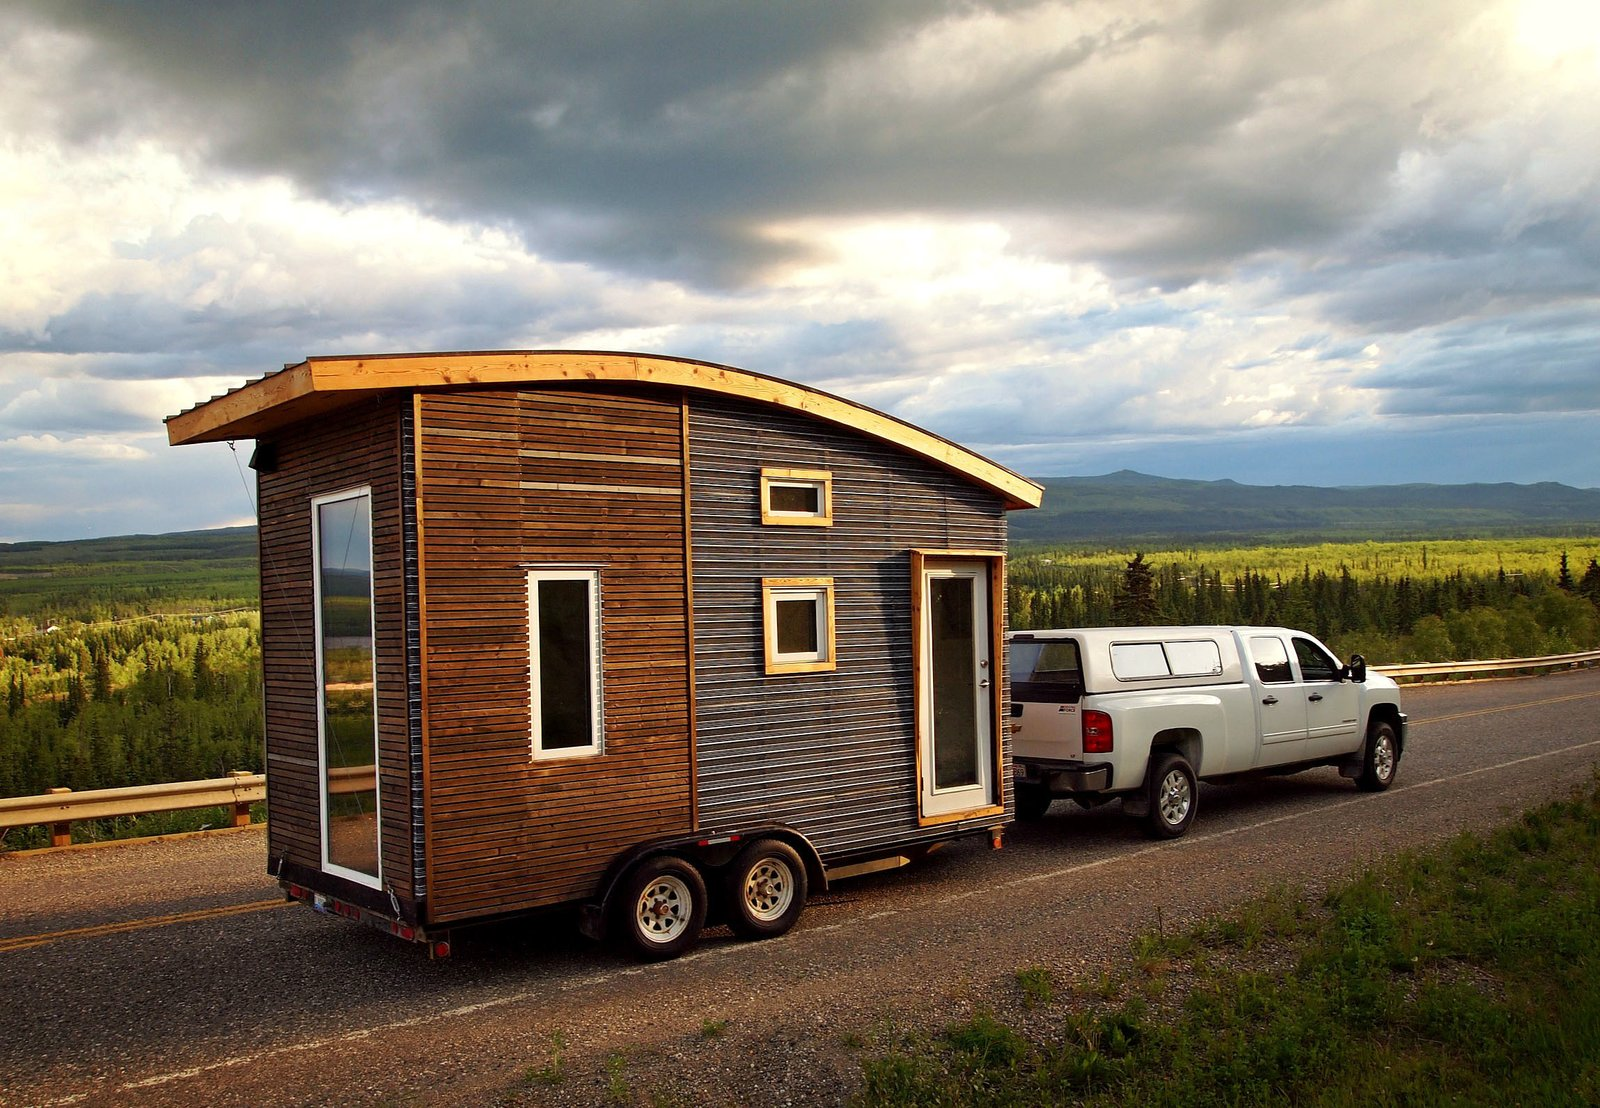 A Modern Trailer is an Experiment in Small-Space Living